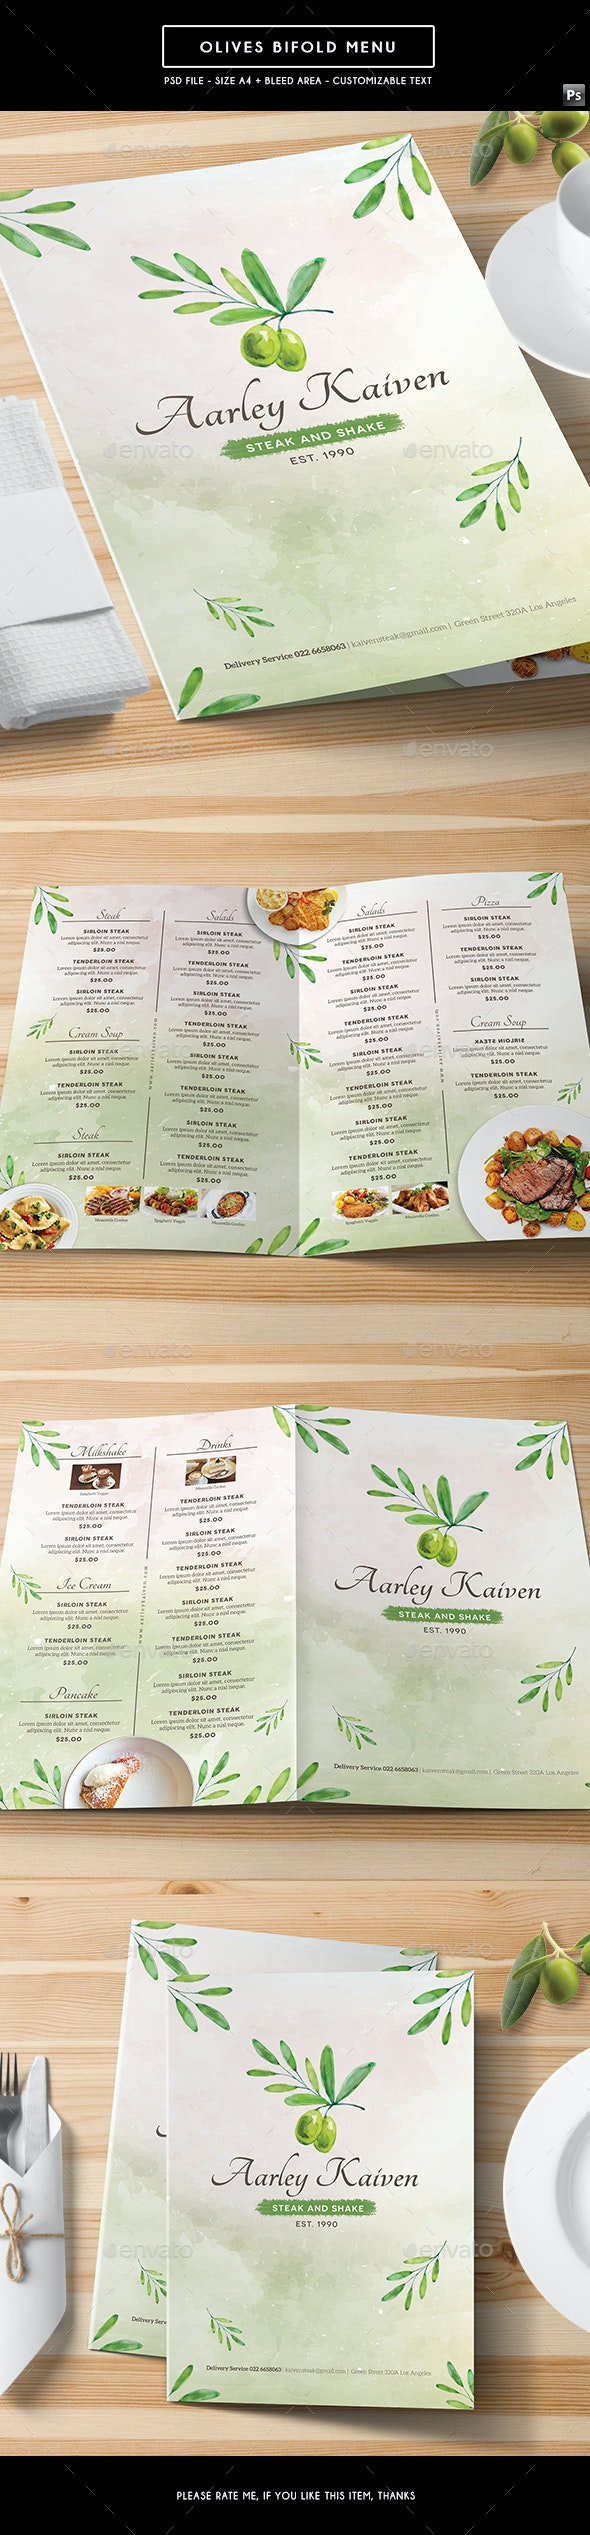 Olives Bifold Menu - Food Menus Print Templates